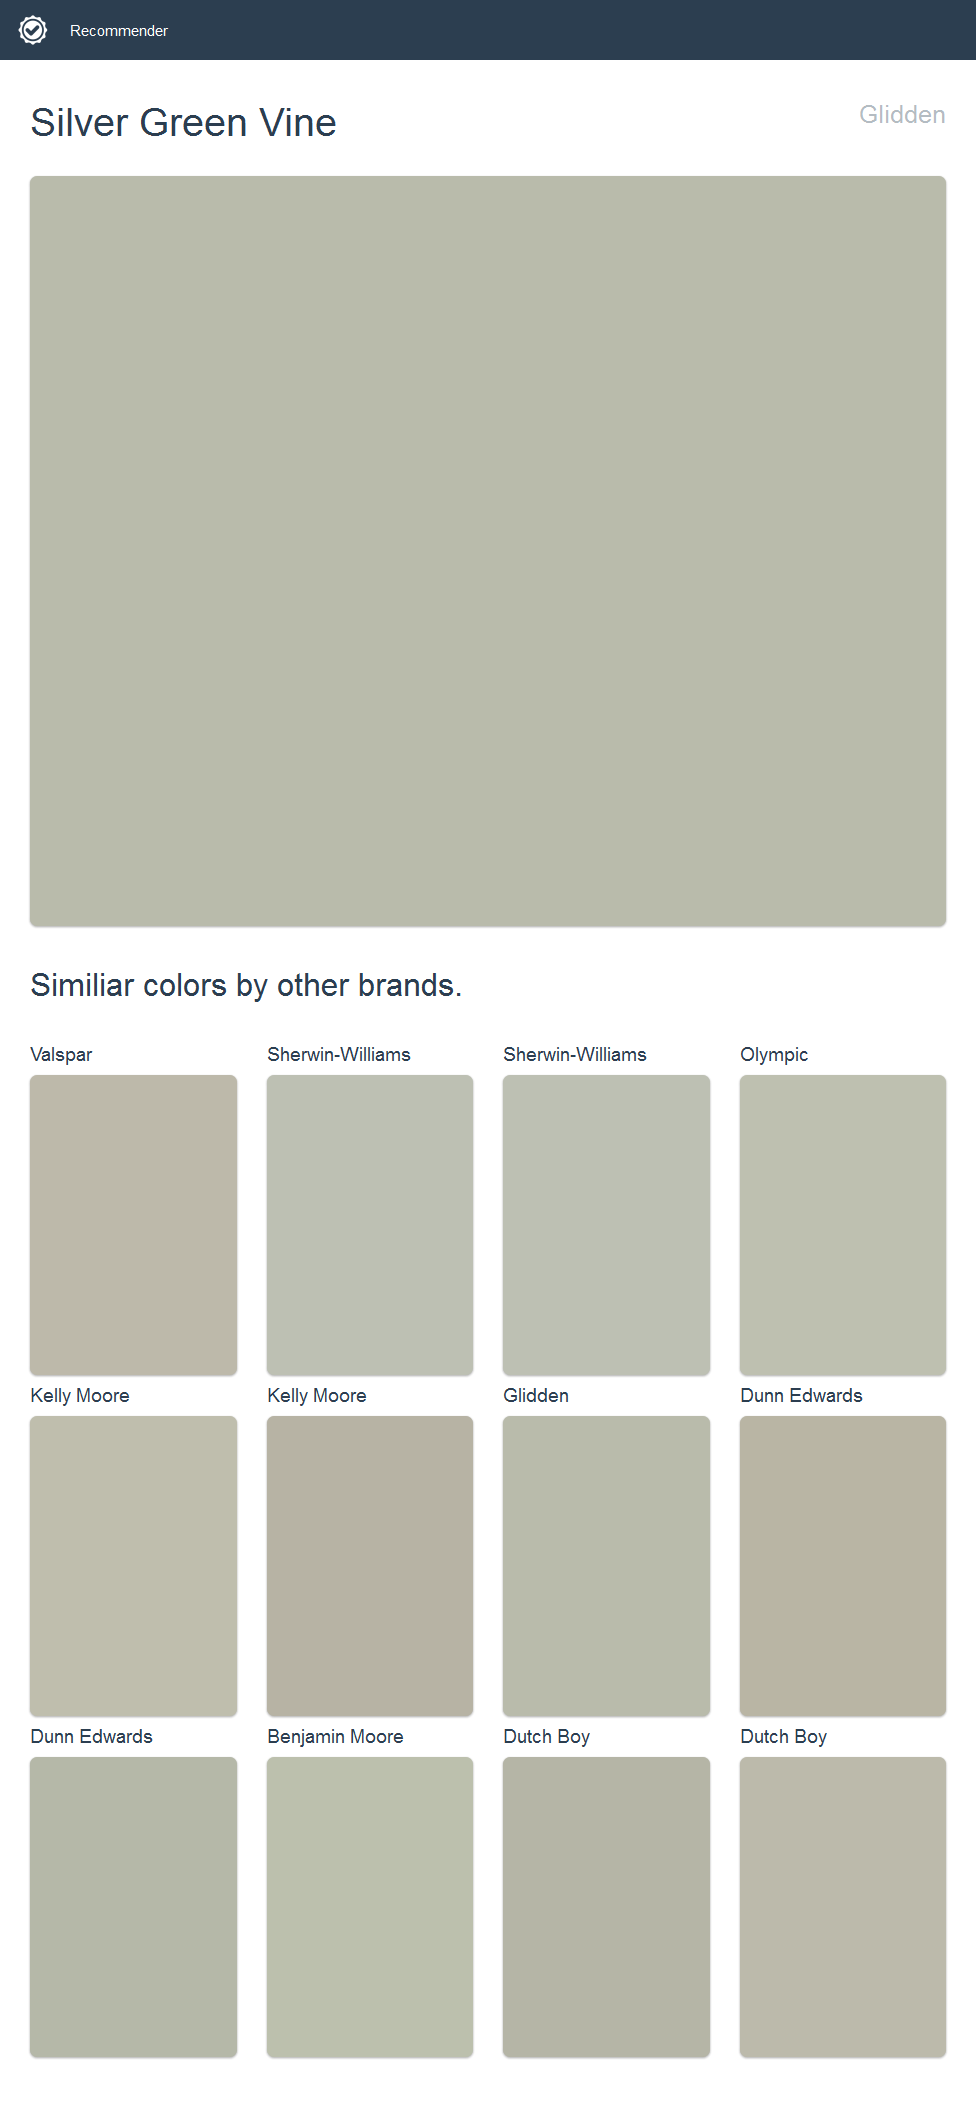 Silver Green Vine Glidden Click The Image To See Similiar Colors By Other Brands